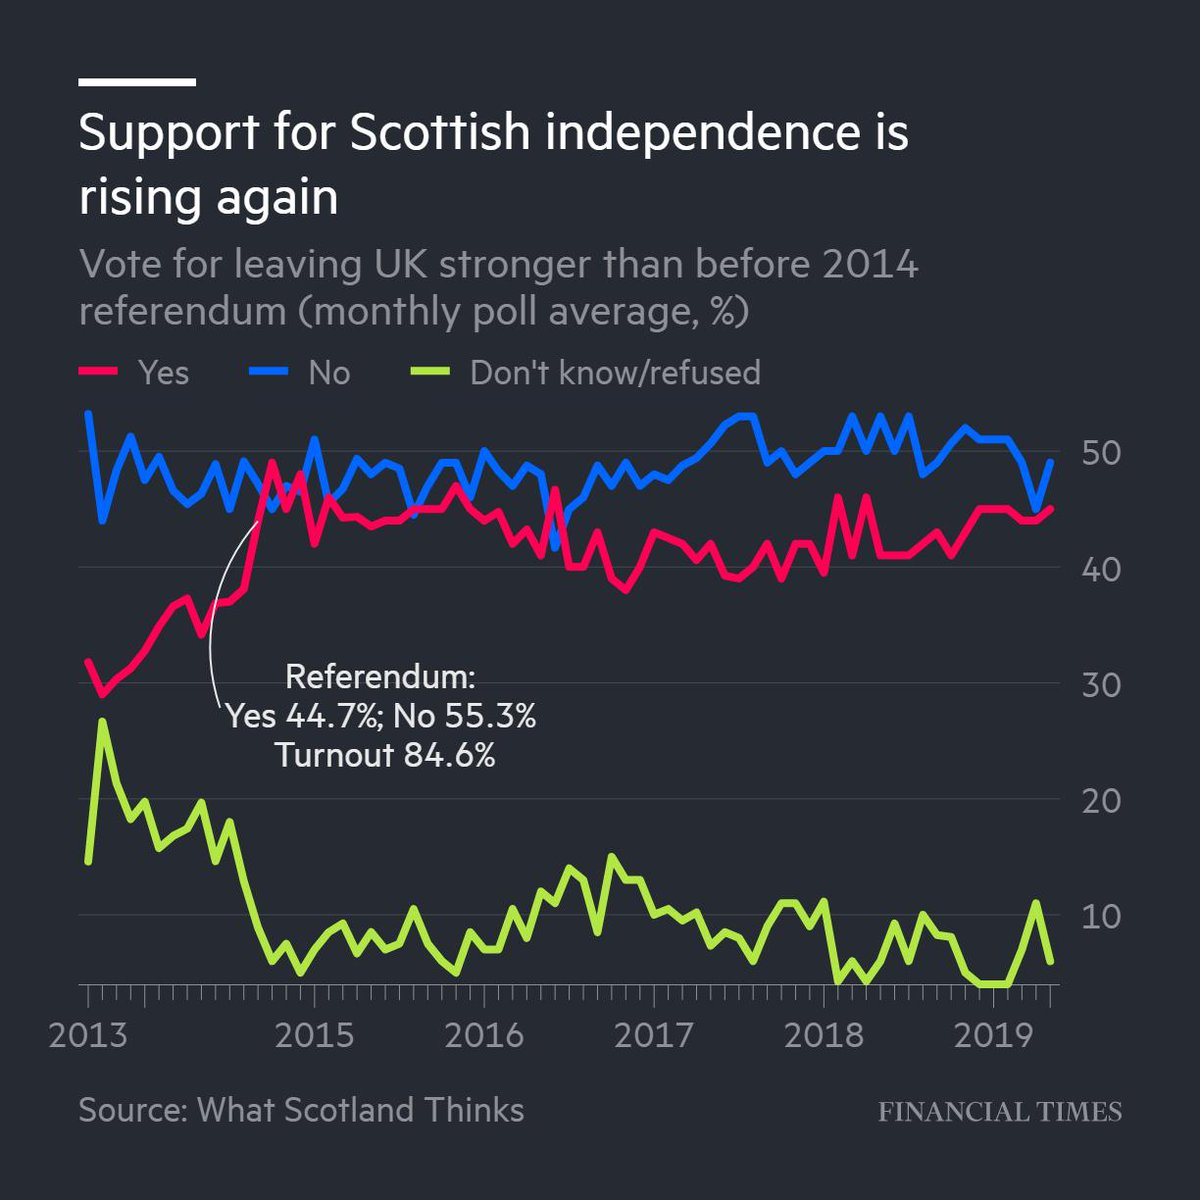 Brexit was already highly unpopular in Scotland. Now it's threatening to unwind the 1707 union that created Great Britain on.ft.com/2XZpoZC